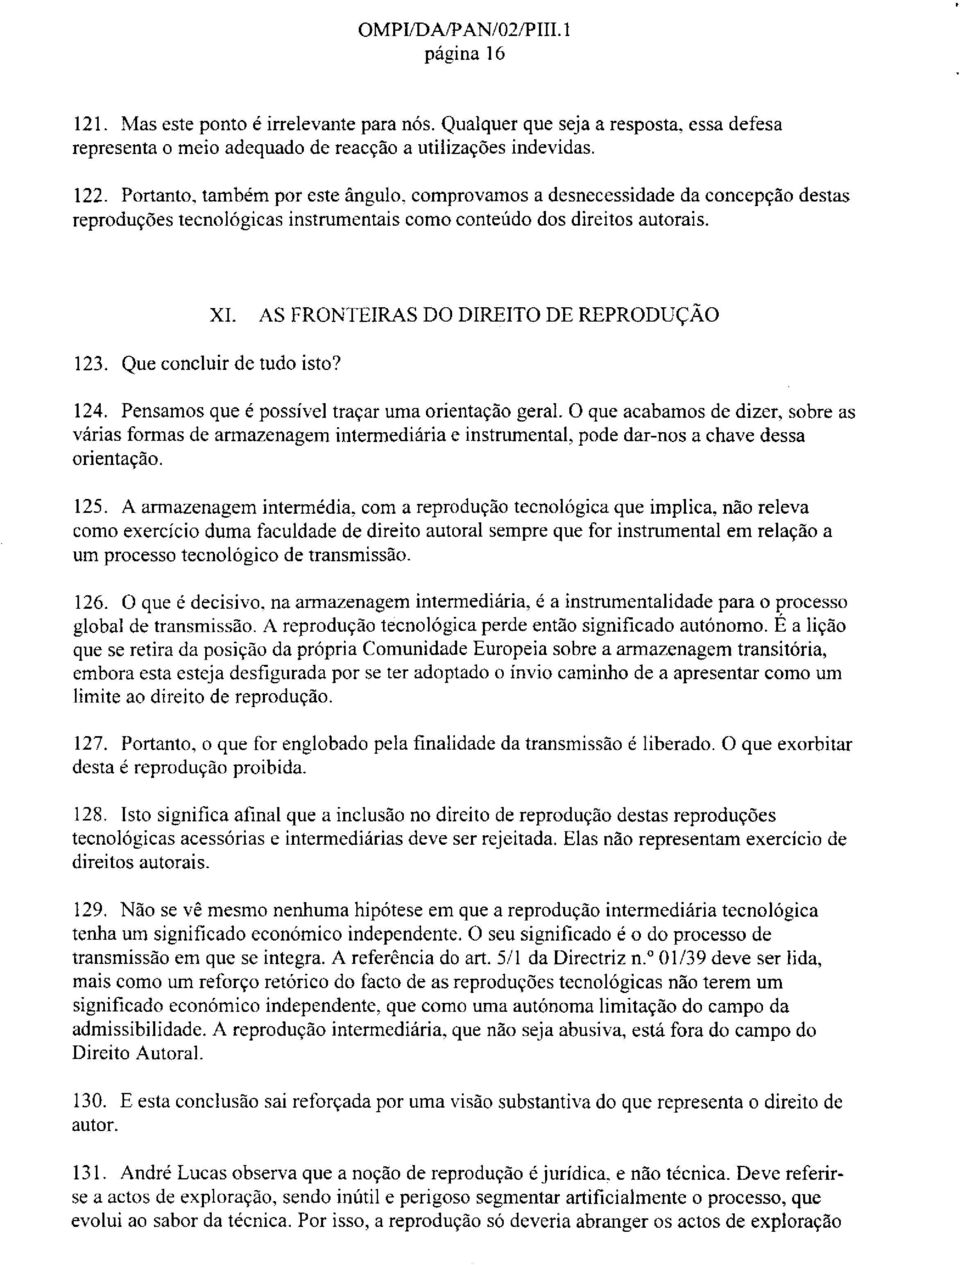 AS FRONTElRAS DO DIREITO DE REPRODU<,::Ao 23. Que concluir de tudo isto? 24. Pensamos que e possivel tracar uma orientacao gera!